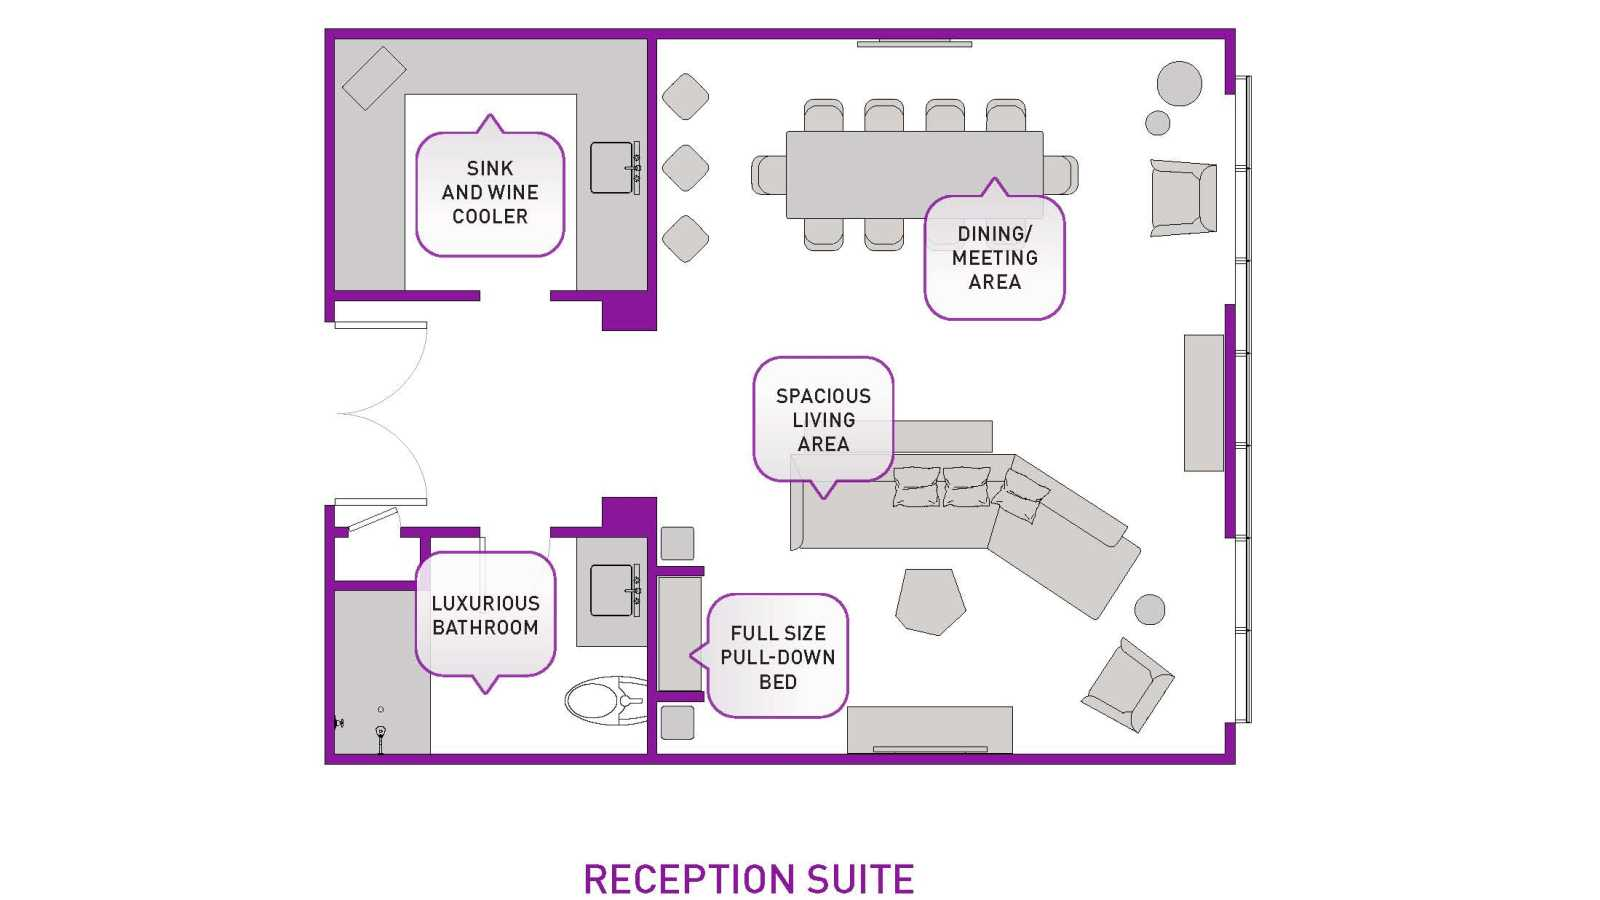 Reception Suite floor plan updated